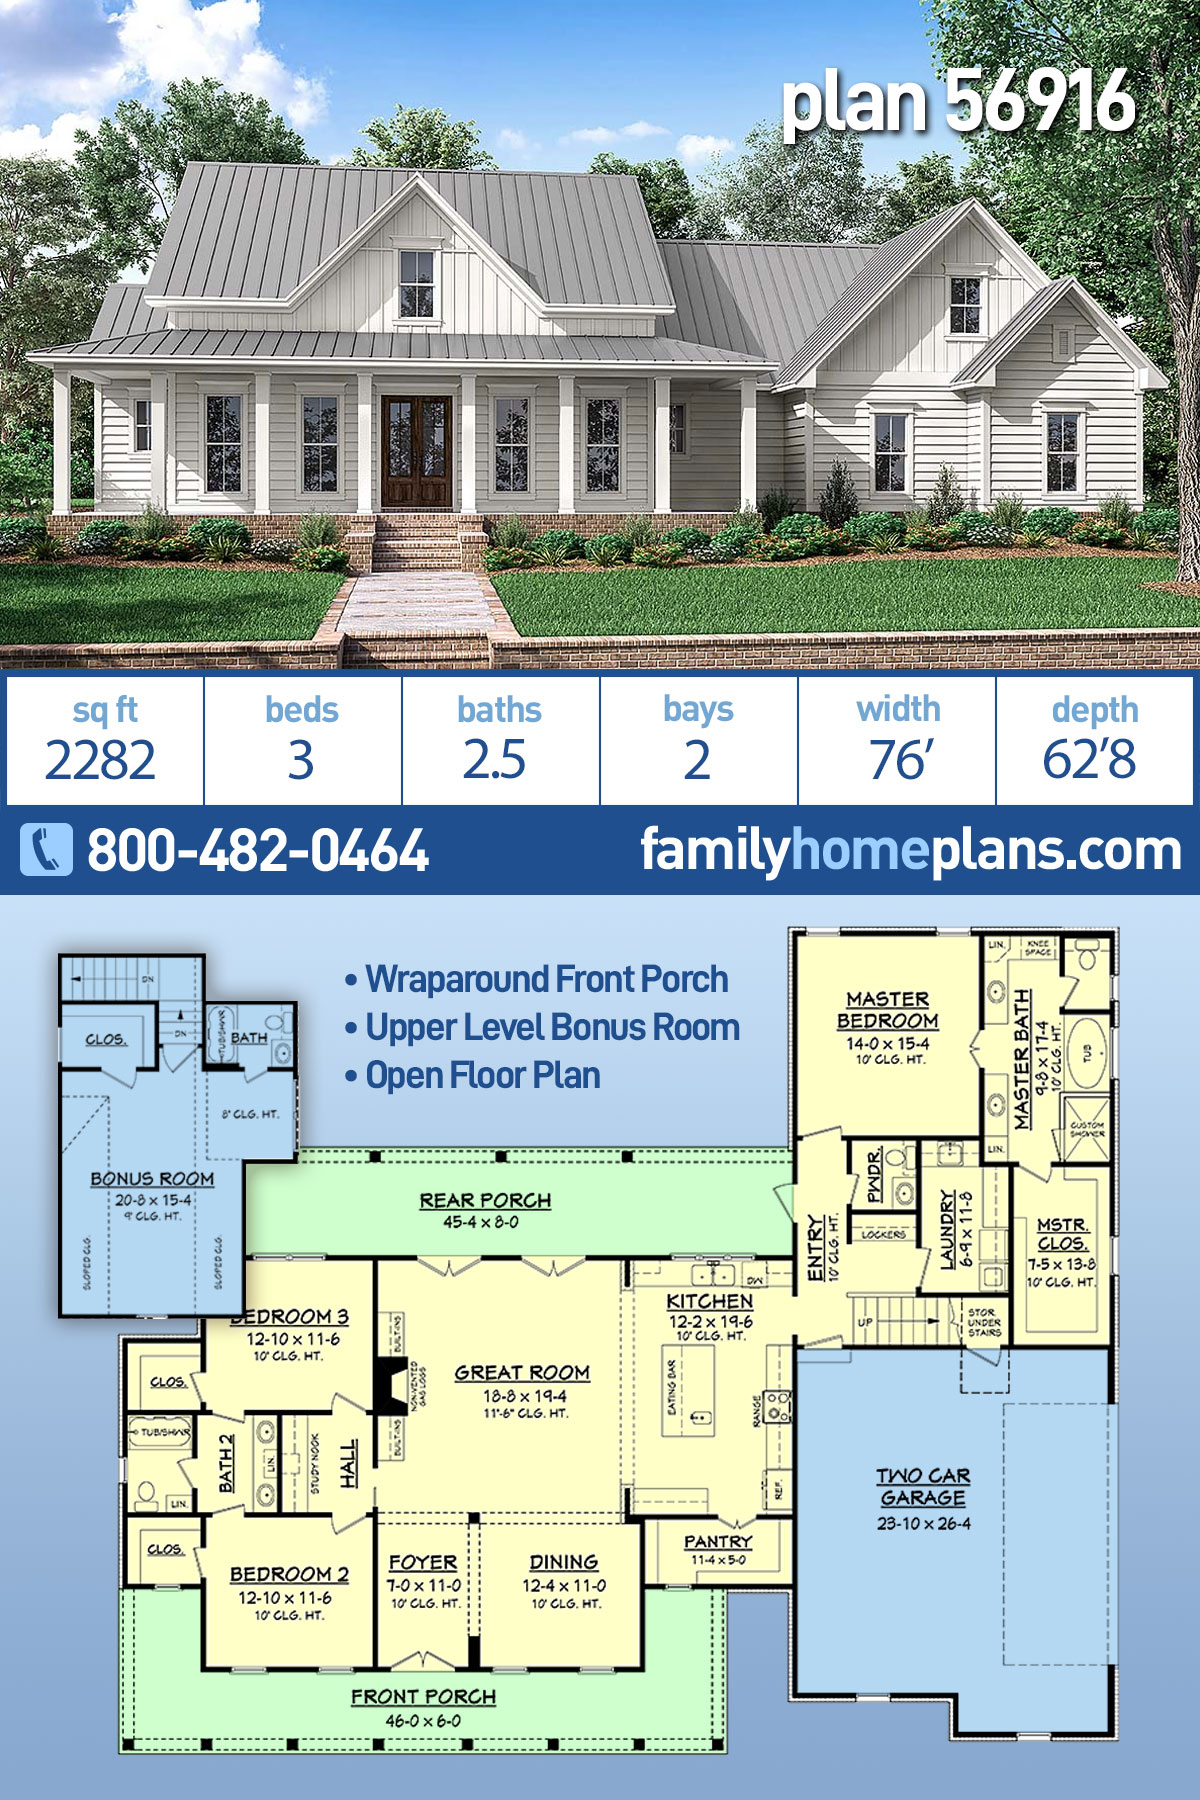 Country, Farmhouse, Southern, Traditional House Plan 56916 with 3 Beds, 3 Baths, 2 Car Garage